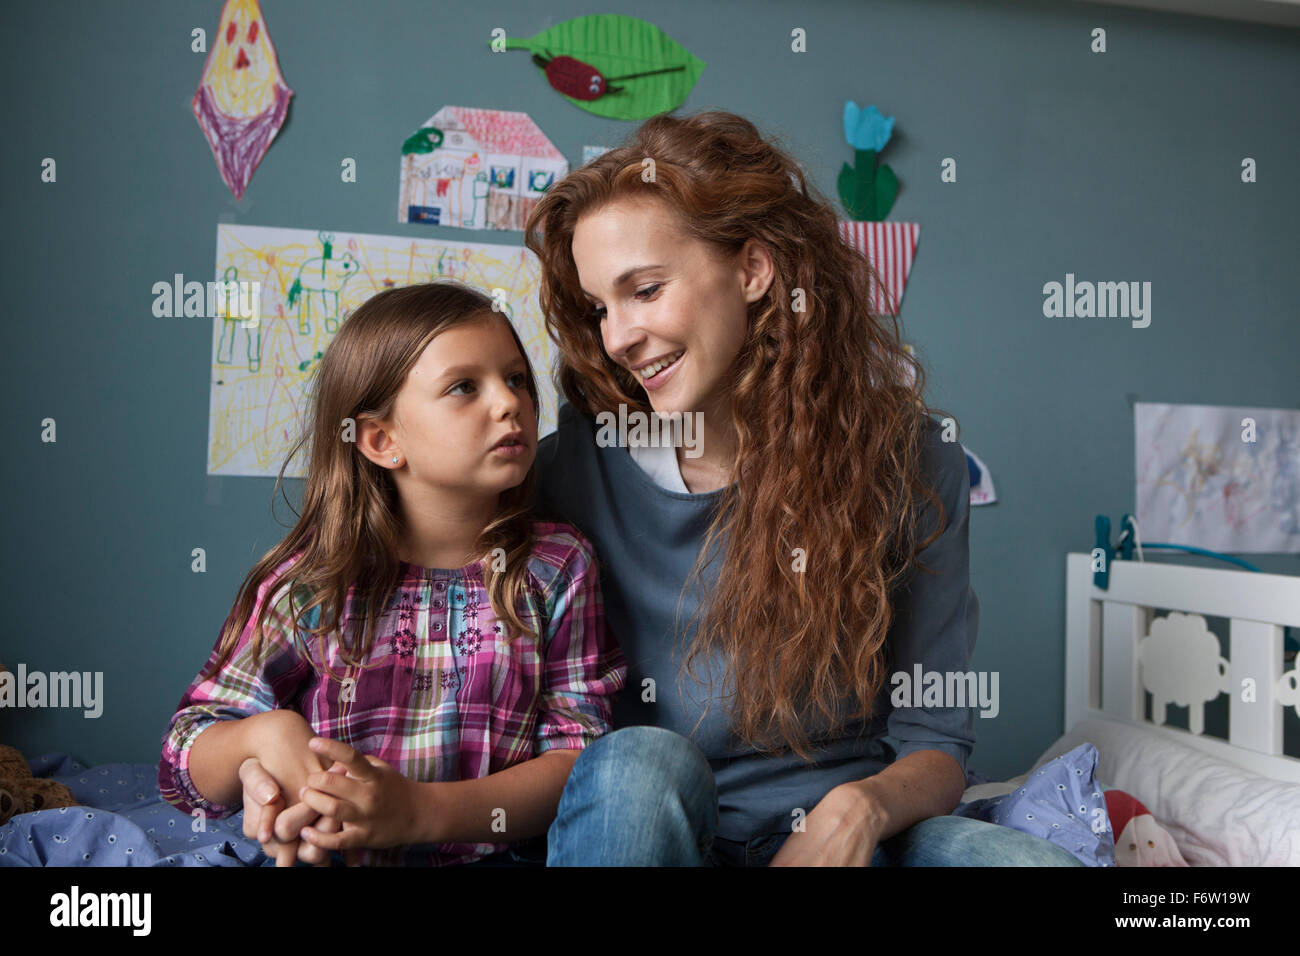 Portrait of woman with her little daughter in children's room Stock Photo